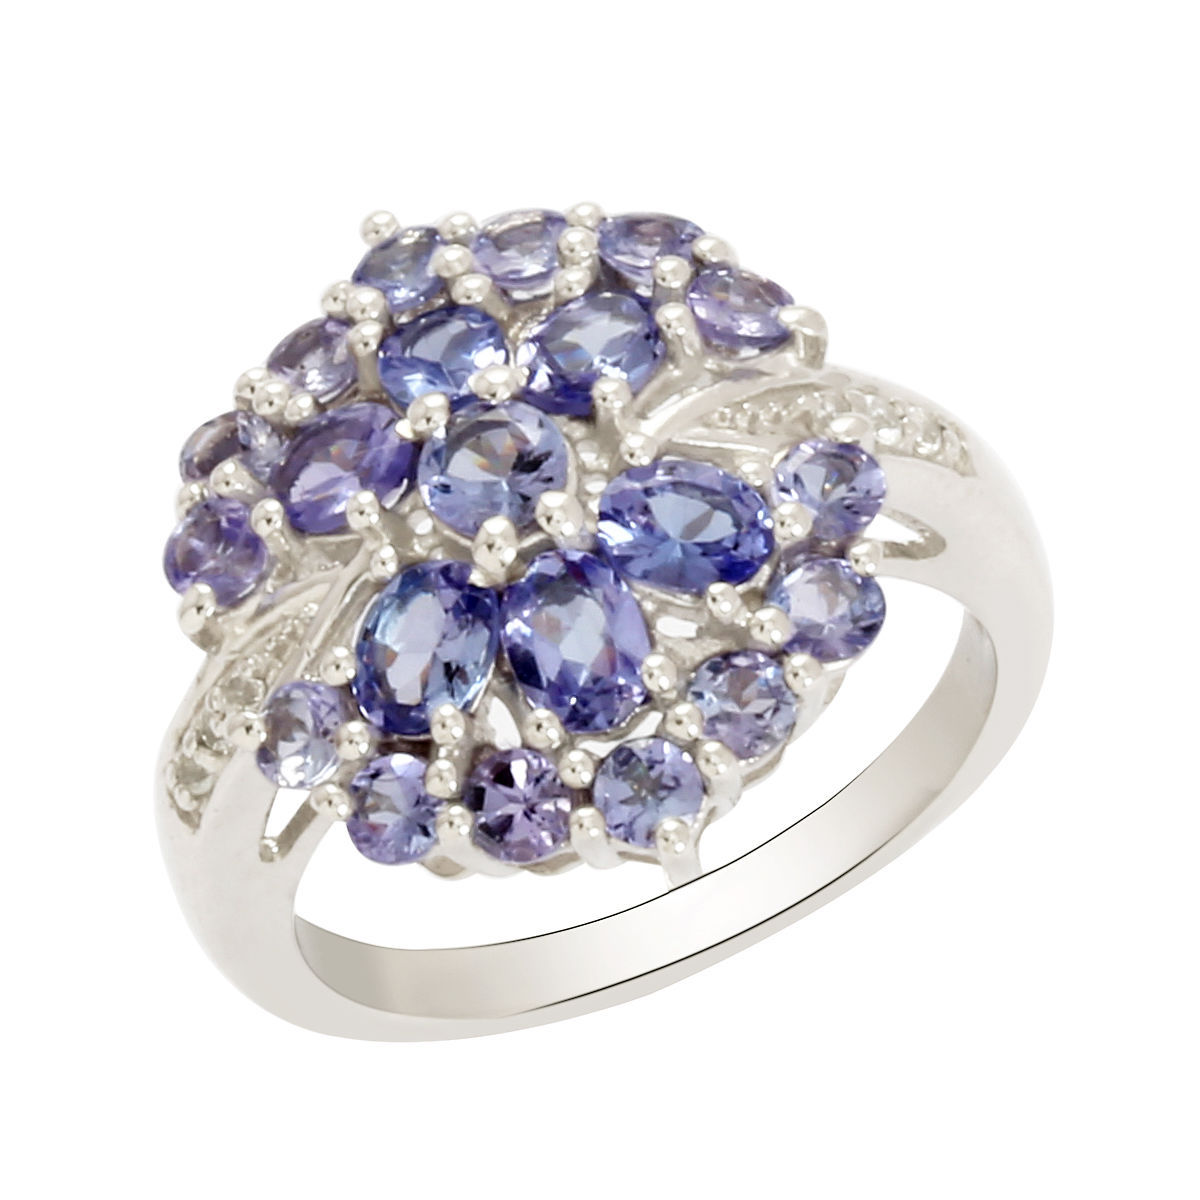 2.33 CARAT TANZANITE COCKTAIL 925 STERLING SILVER JEWELRY RING SZ 7 SHRI0282